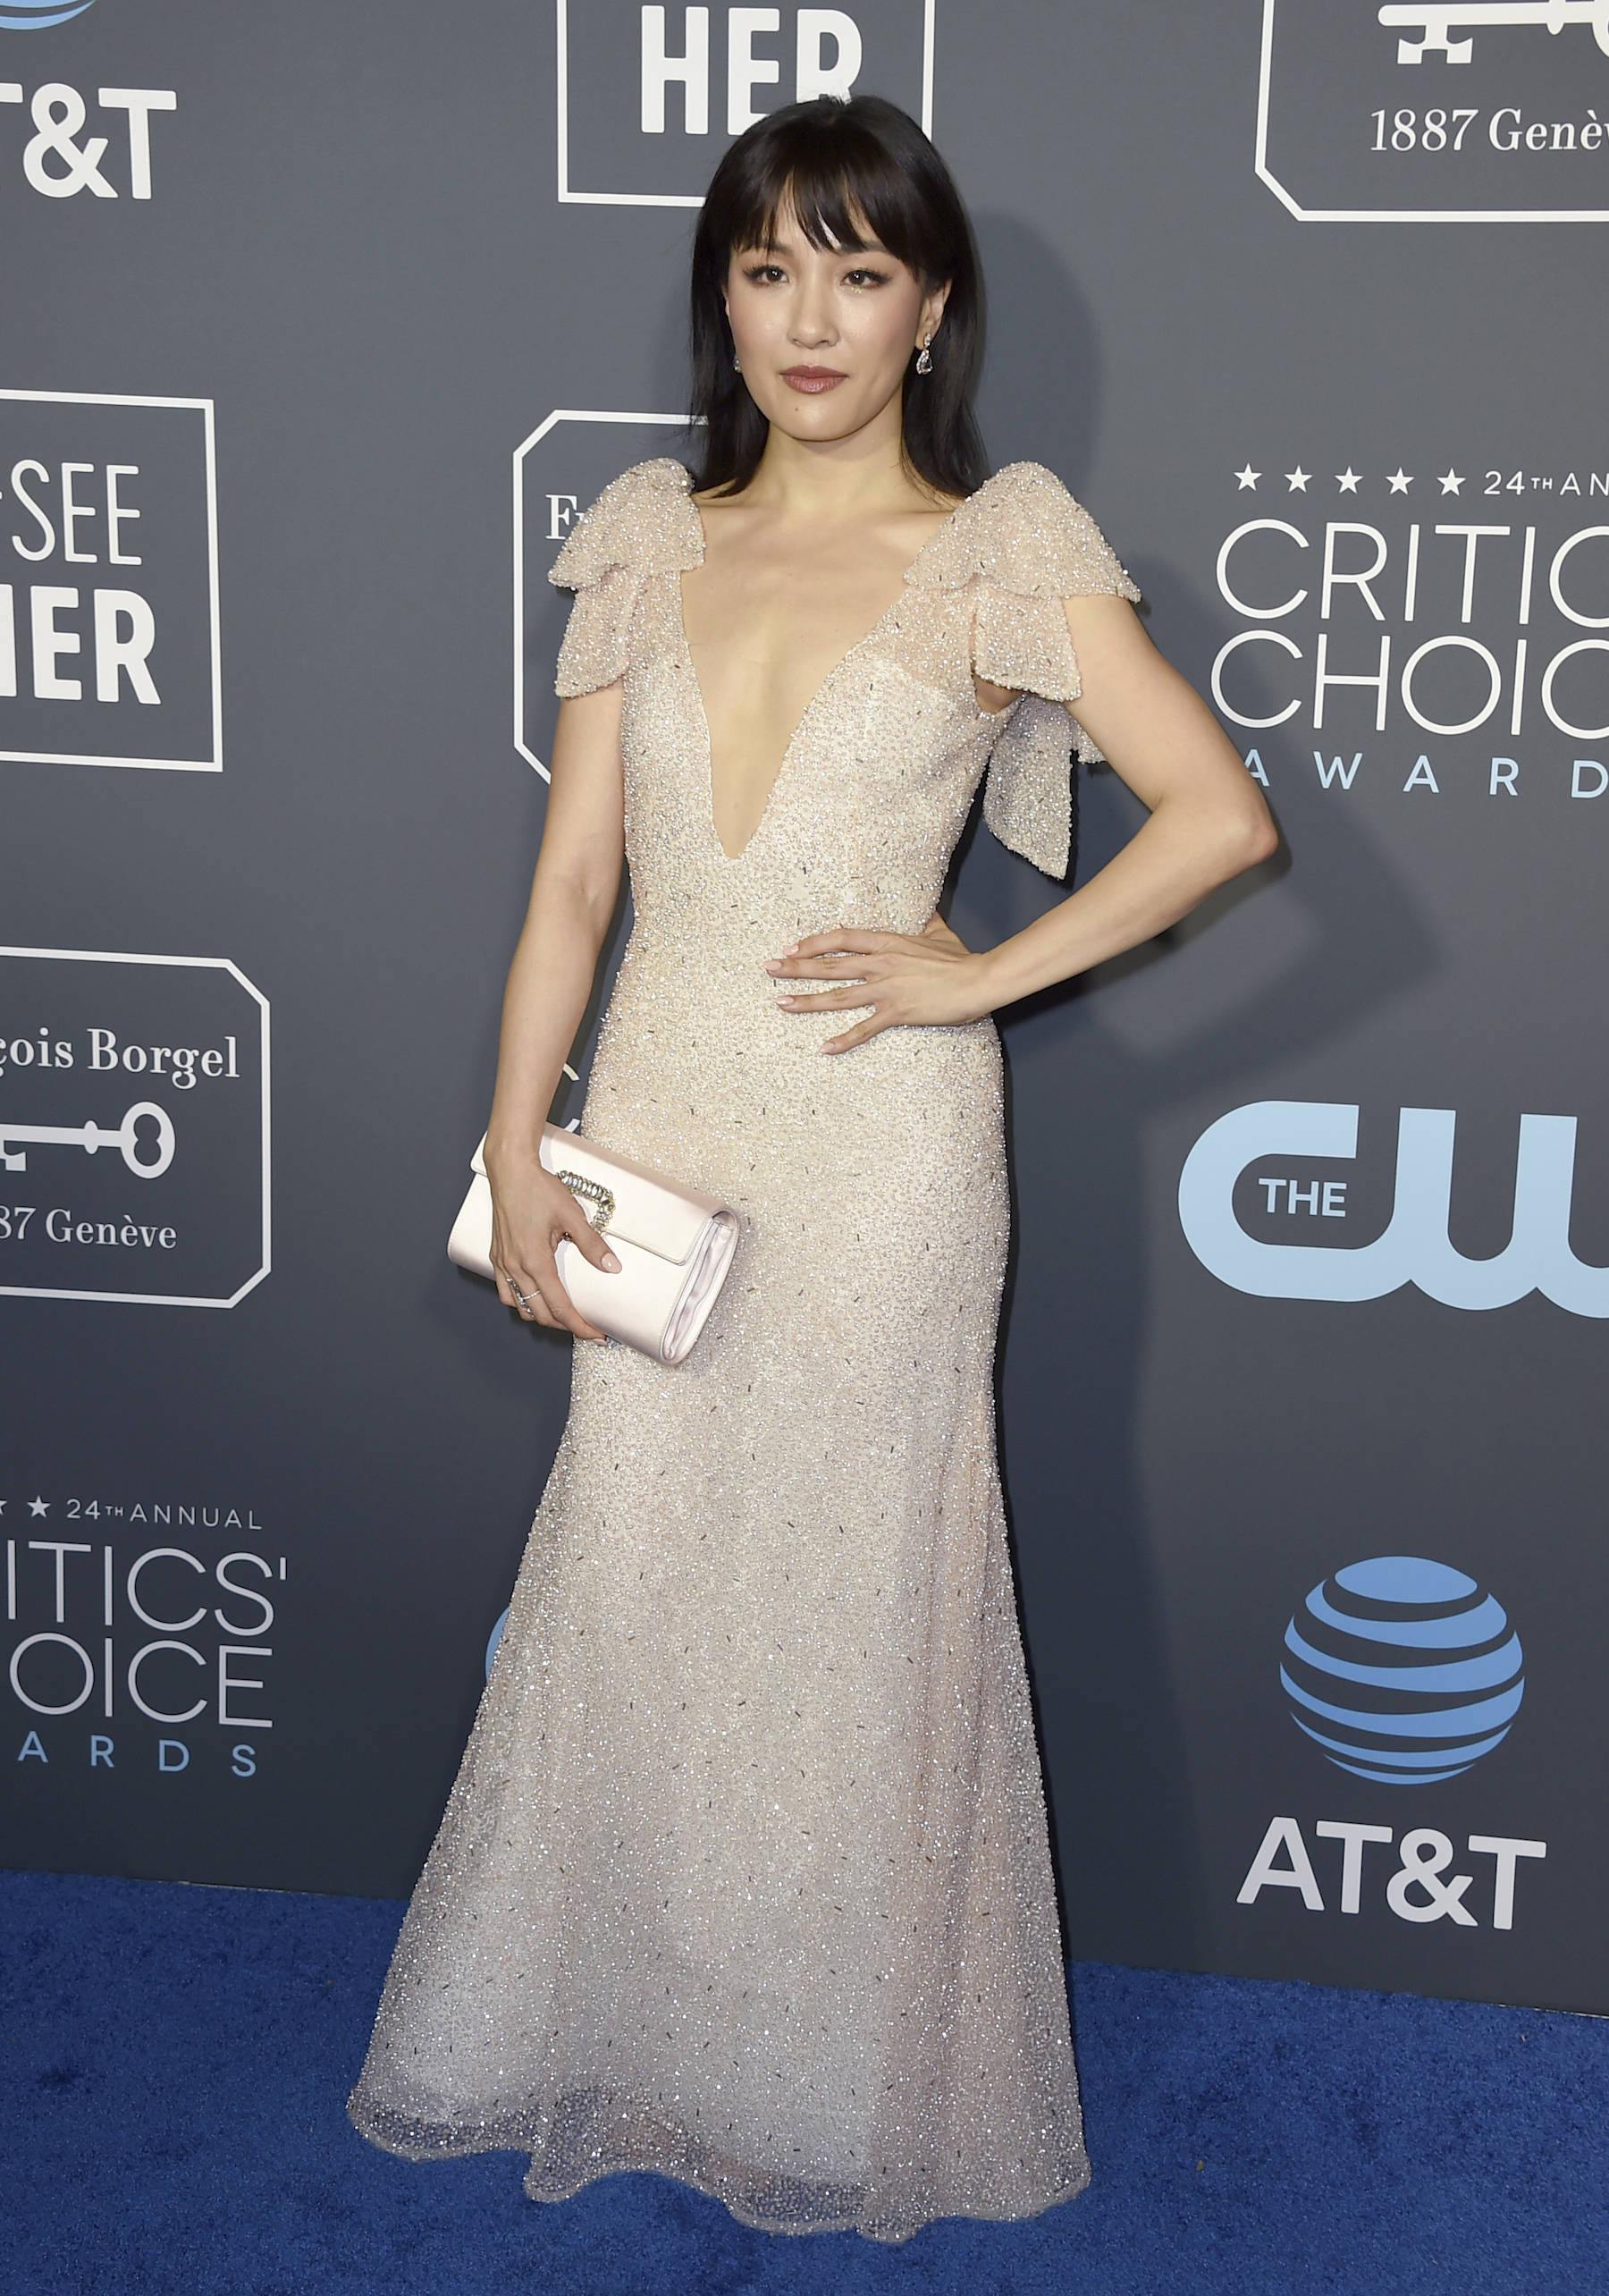 "<div class=""meta image-caption""><div class=""origin-logo origin-image ap""><span>AP</span></div><span class=""caption-text"">Constance Wu arrives at the 24th annual Critics' Choice Awards on Sunday, Jan. 13, 2019, at the Barker Hangar in Santa Monica, Calif. (Jordan Strauss/Invision/AP)</span></div>"